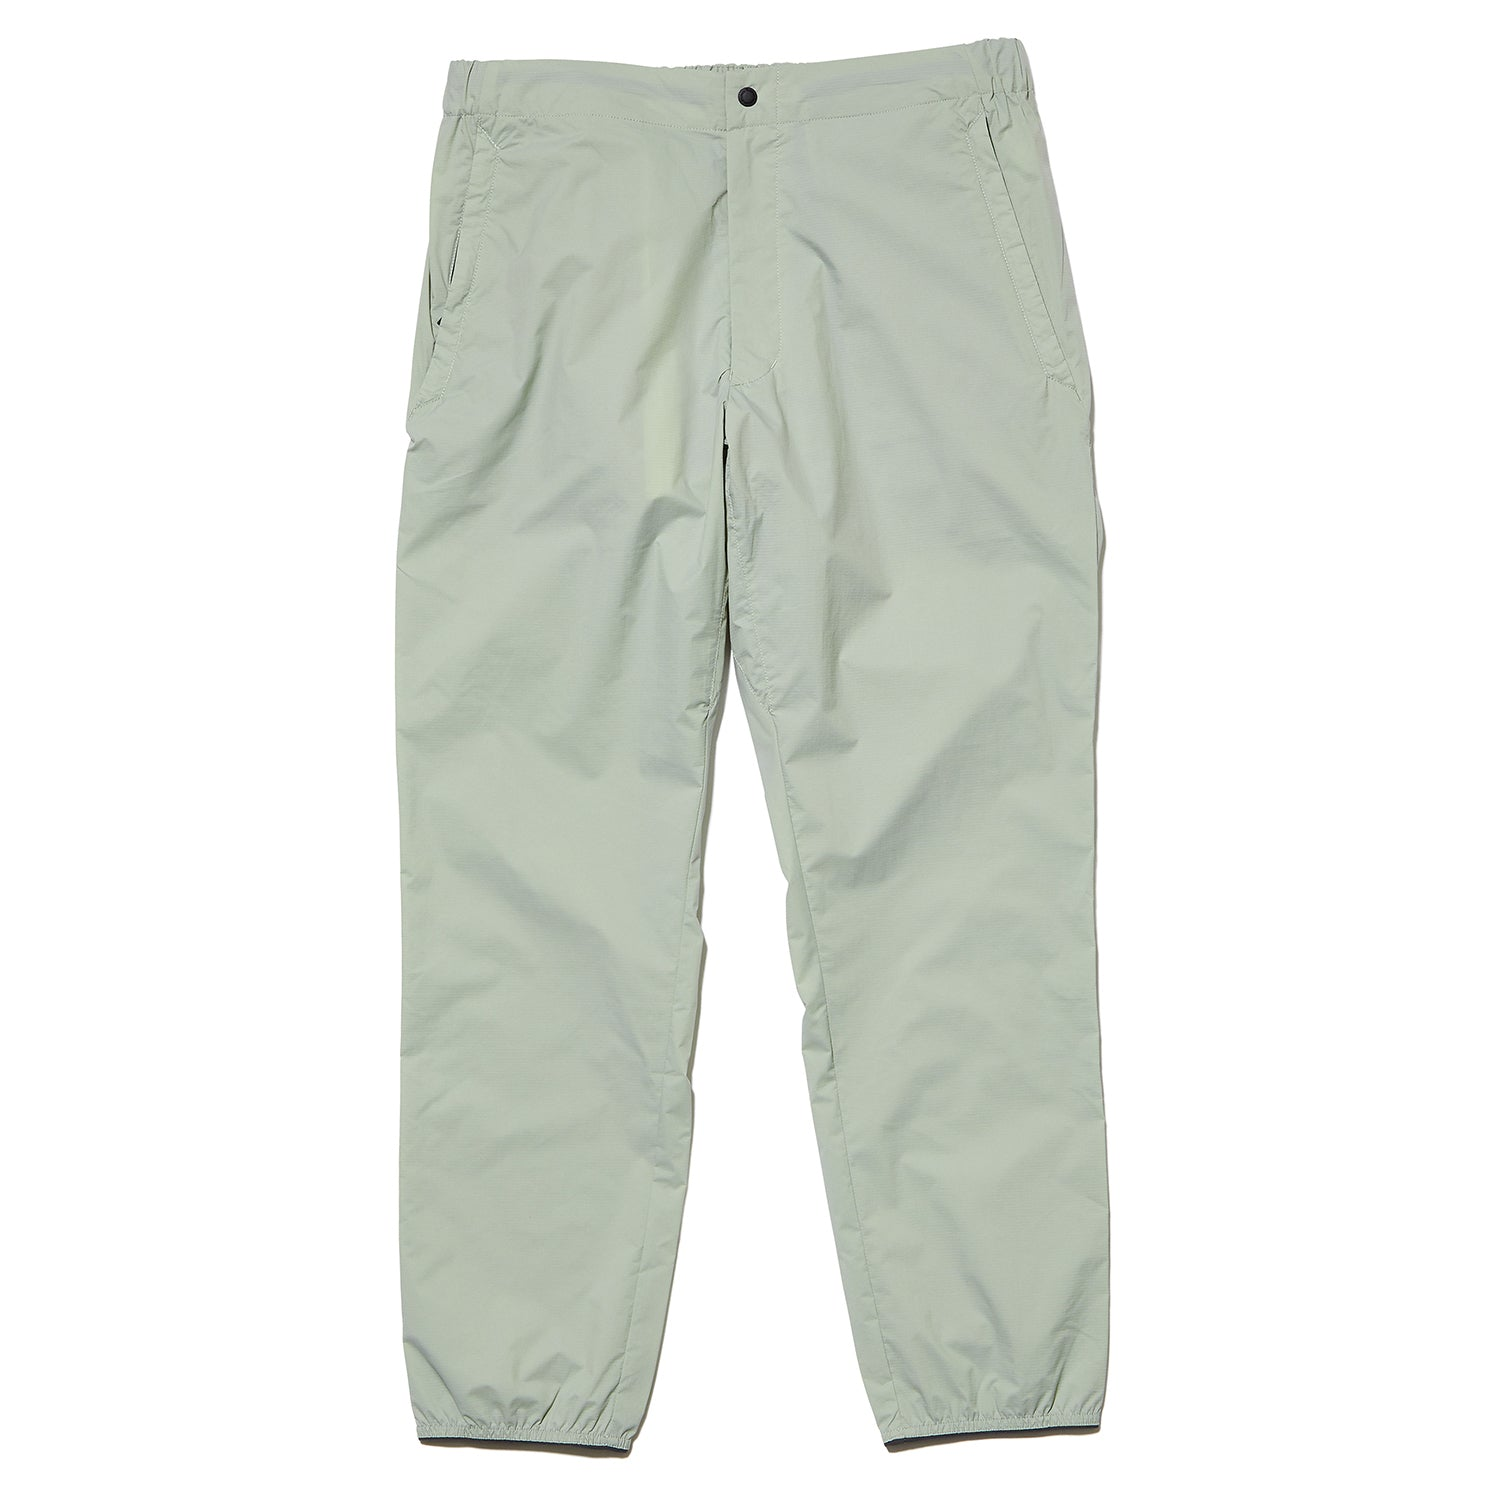 WOVEN STRETCH 9/10 PANTS GRAPHITE NAVY